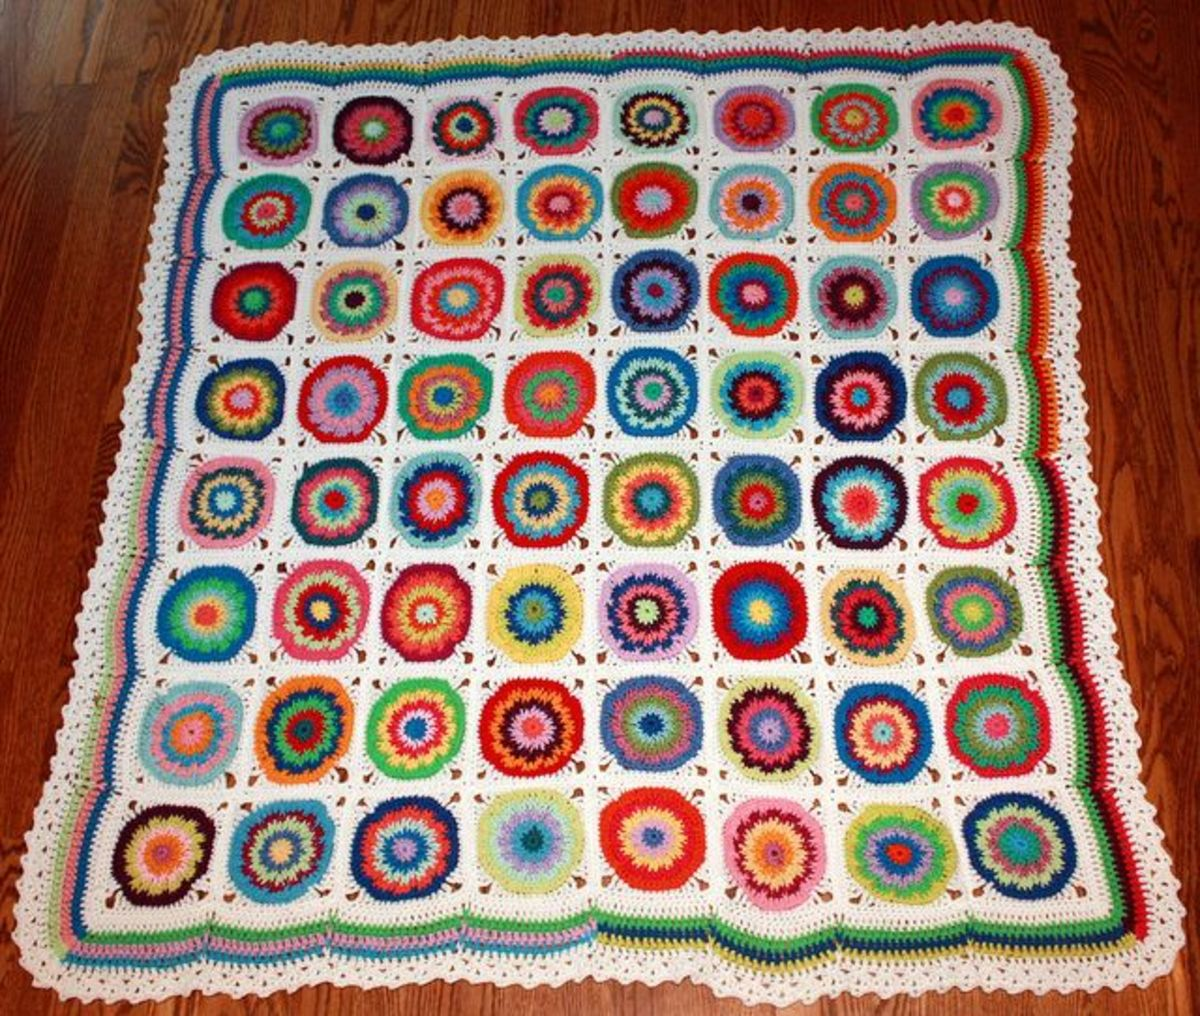 learn-how-to-crochet-craft-tutorials-projects-for-beginners